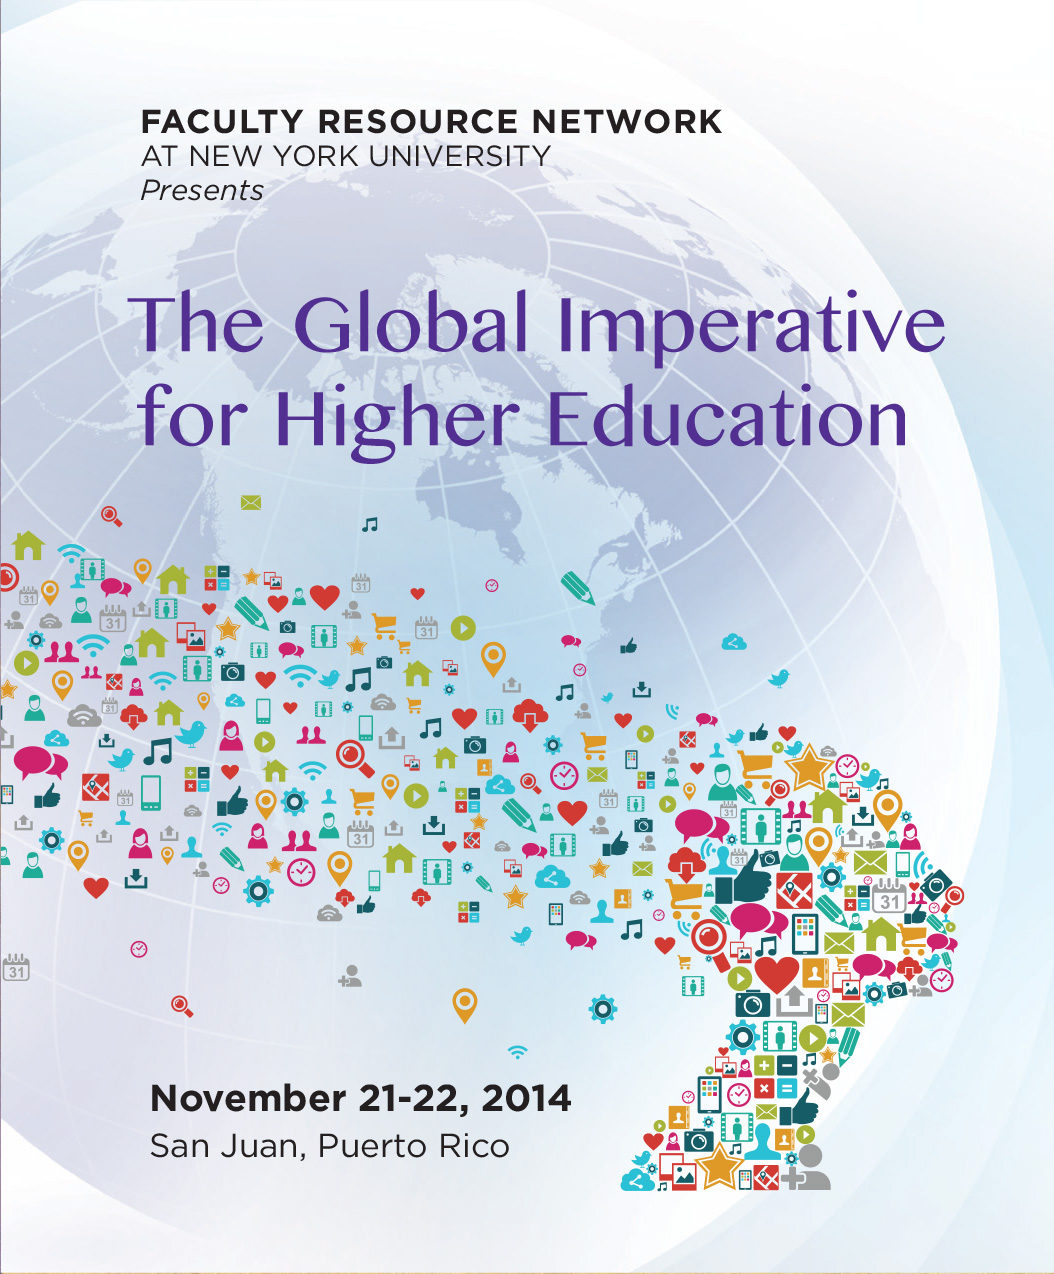 The Global Imperative for Higher Education